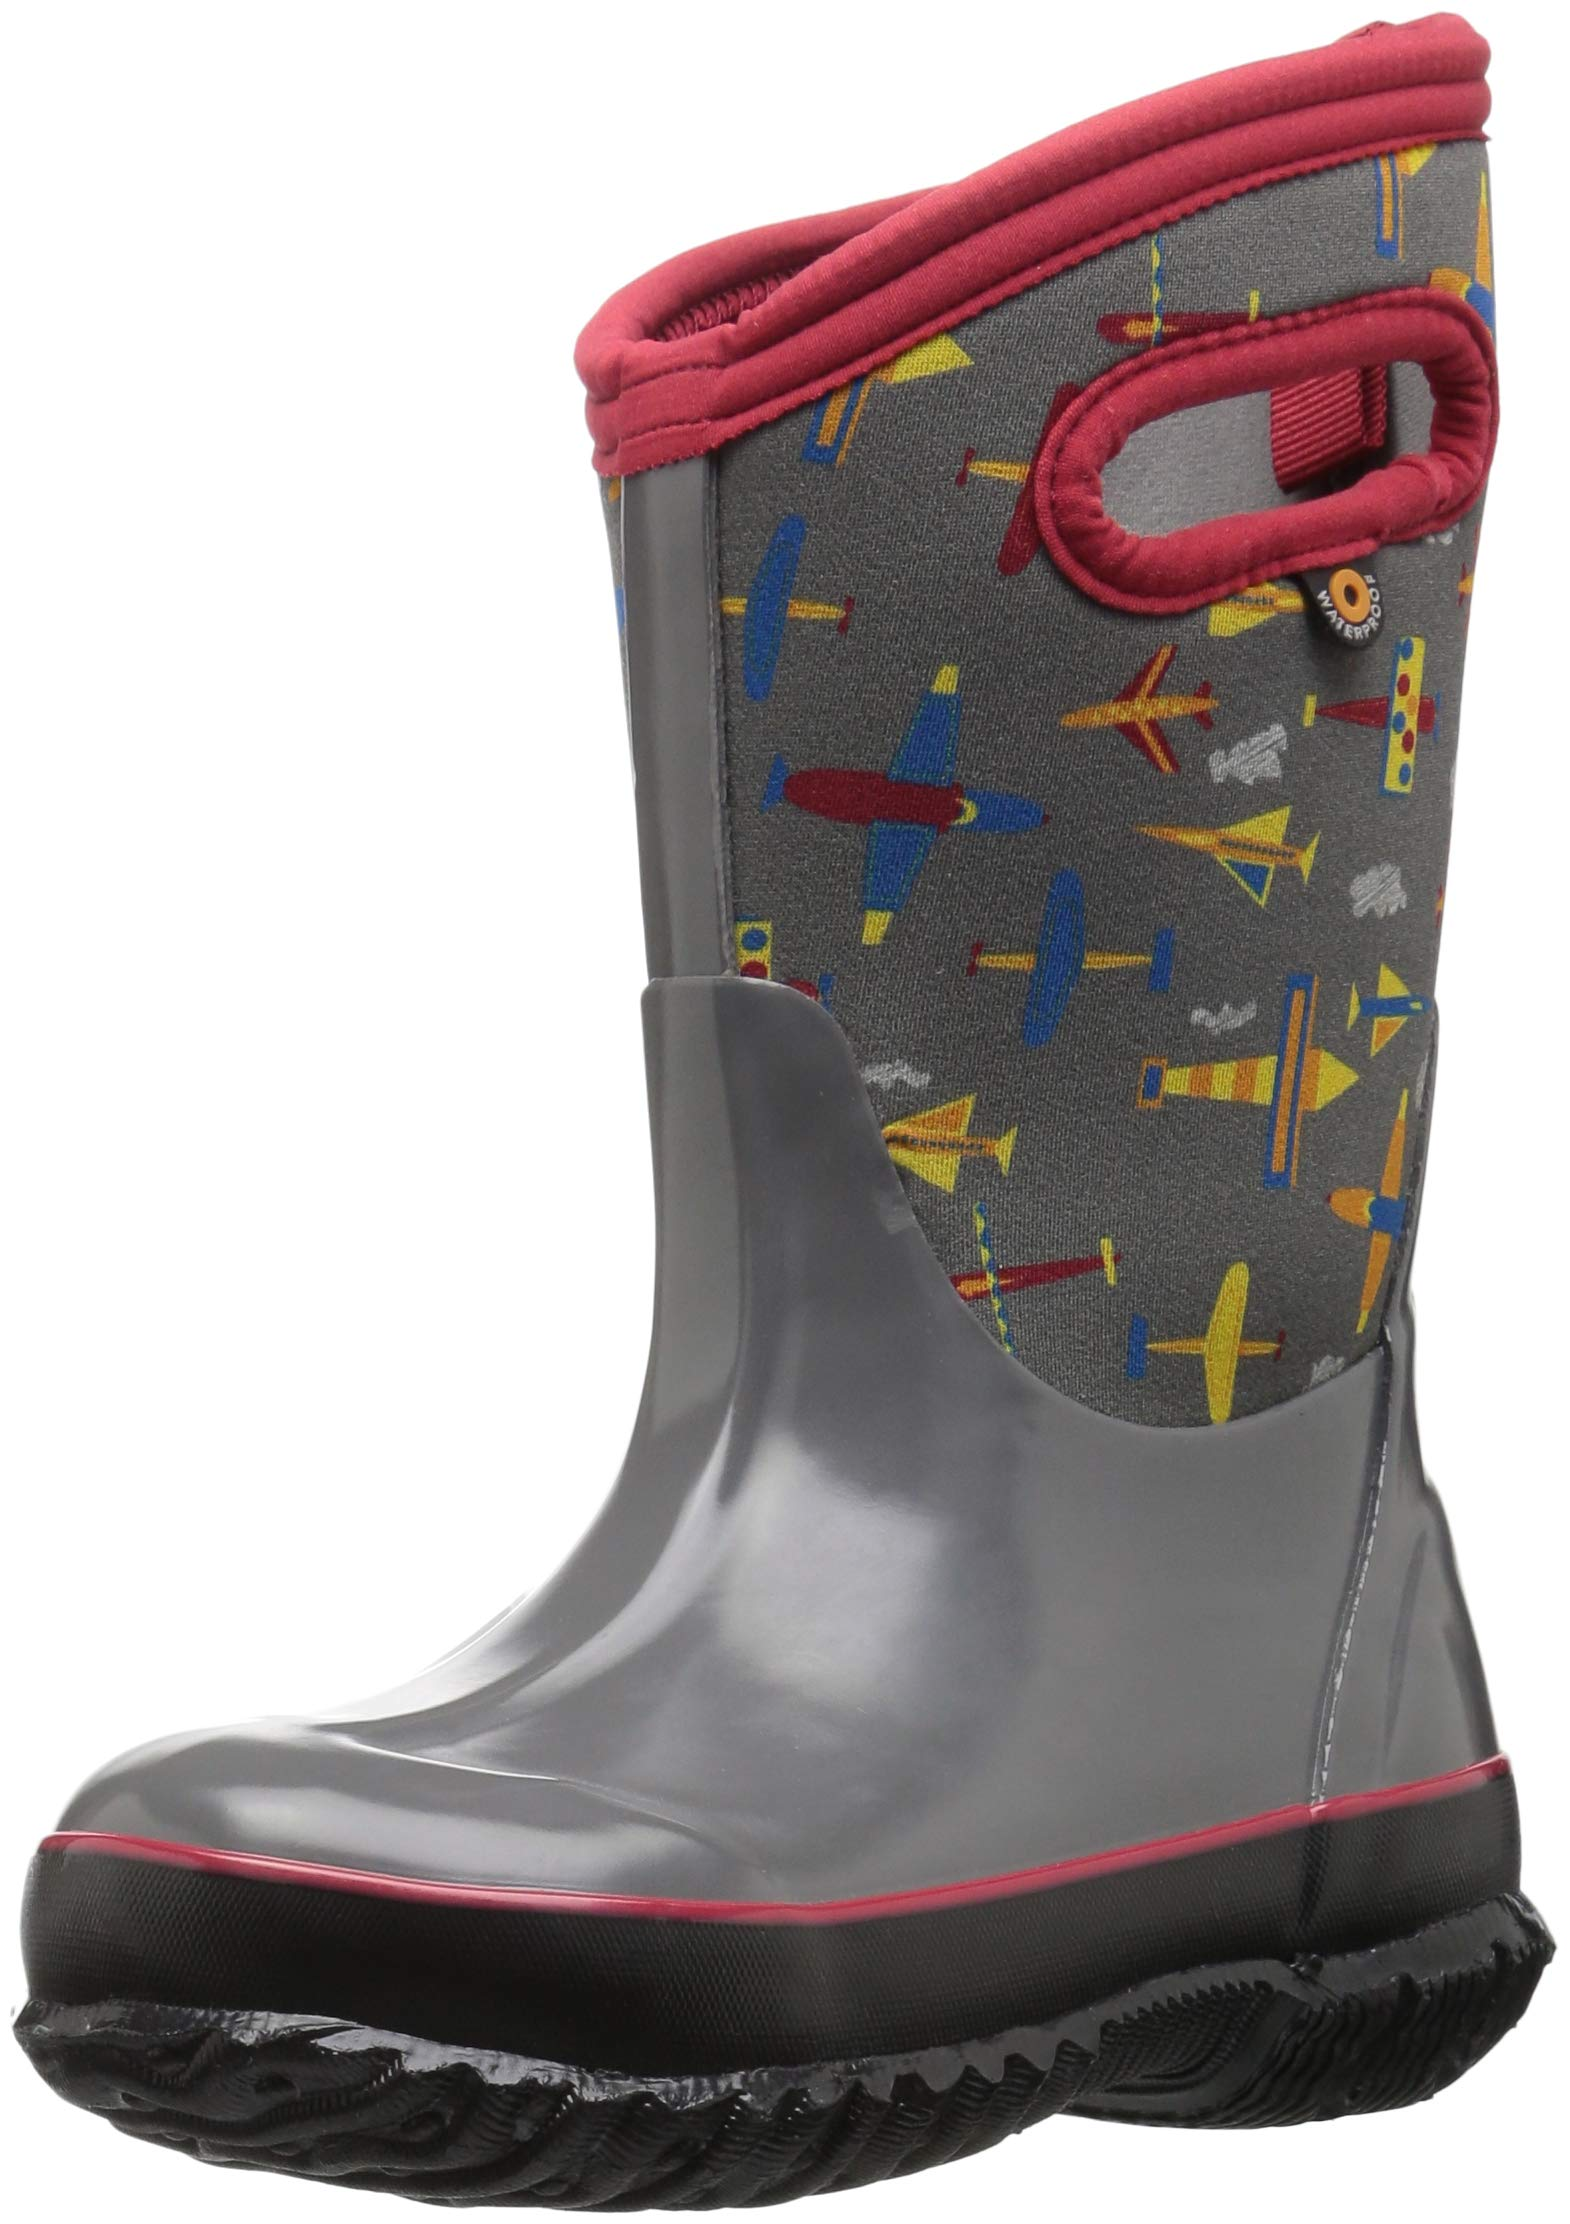 Bogs Classic High Waterproof Insulated Rubber Neoprene Rain Boot Snow, Planes Gray Multi, 3 M US Little Kid